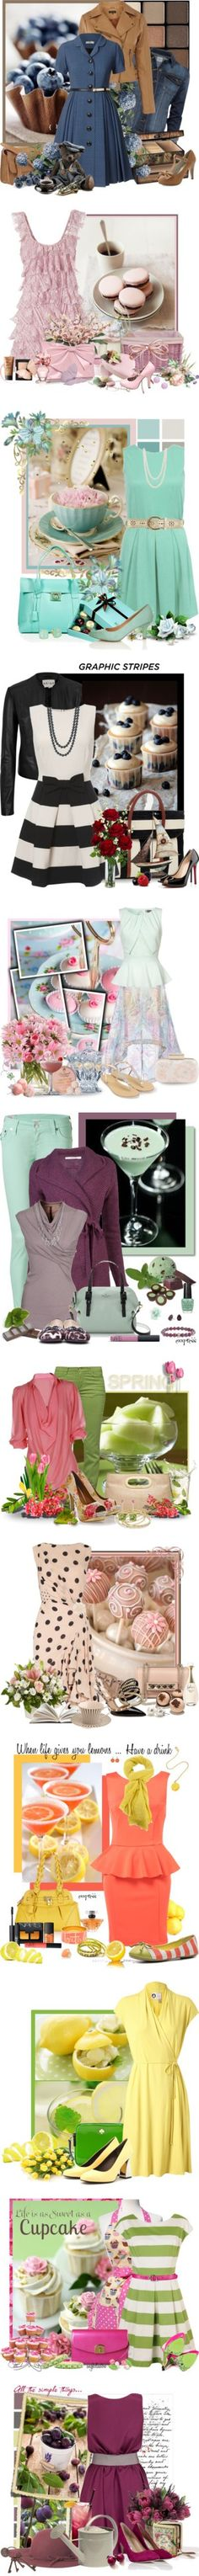 """""""fancy foods my fav's"""" by countrycousin ❤ liked on Polyvore"""